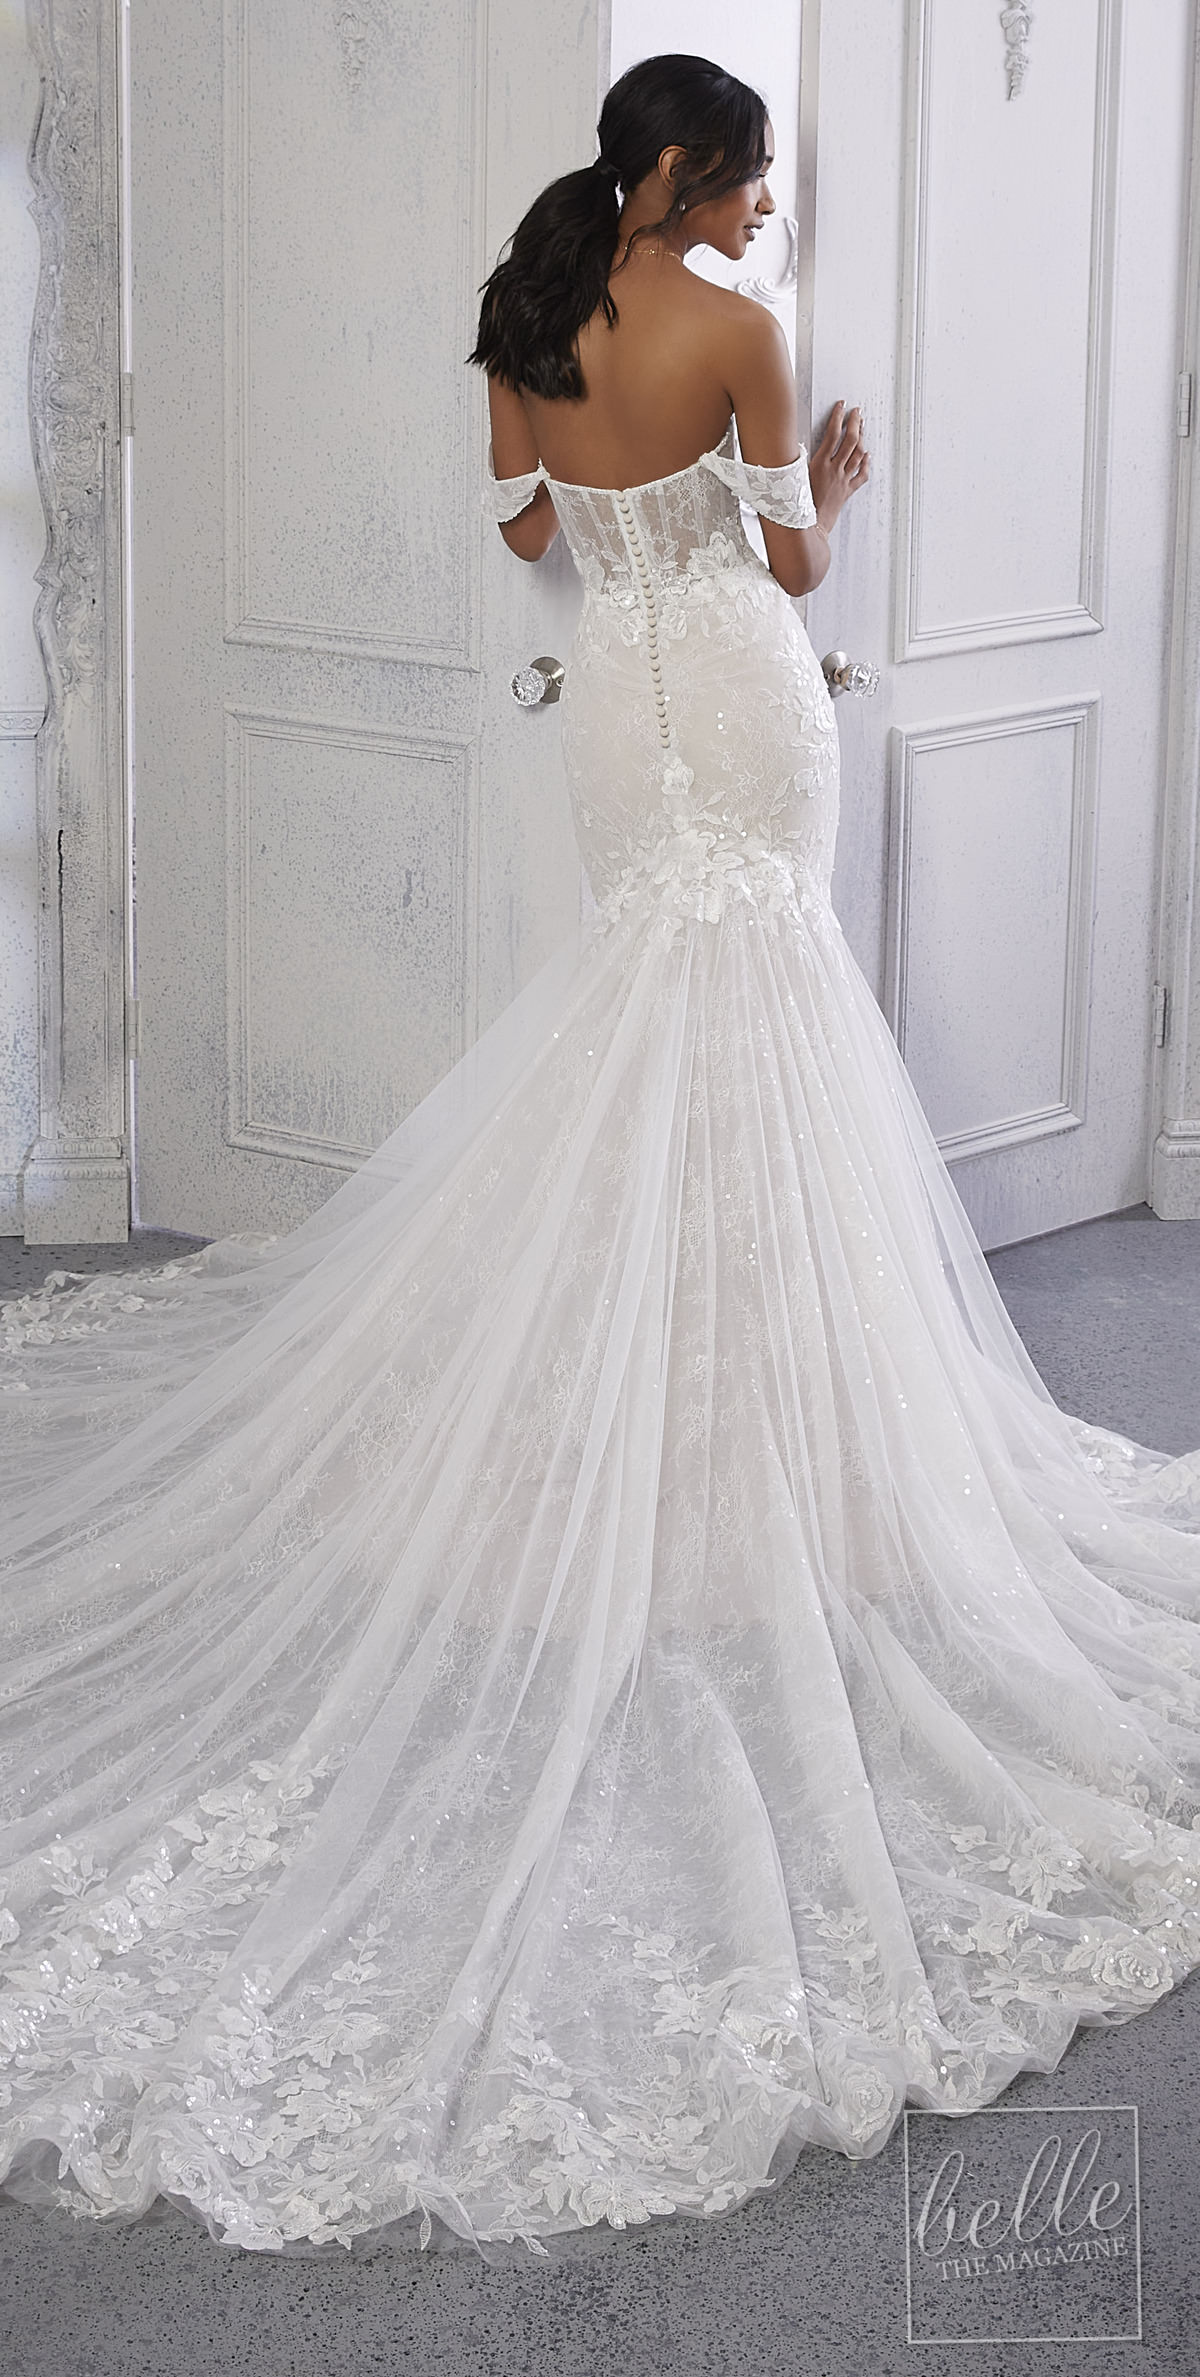 Sexy Shiloutte Wedding Dress - Morilee By Madeline Gardner 2022